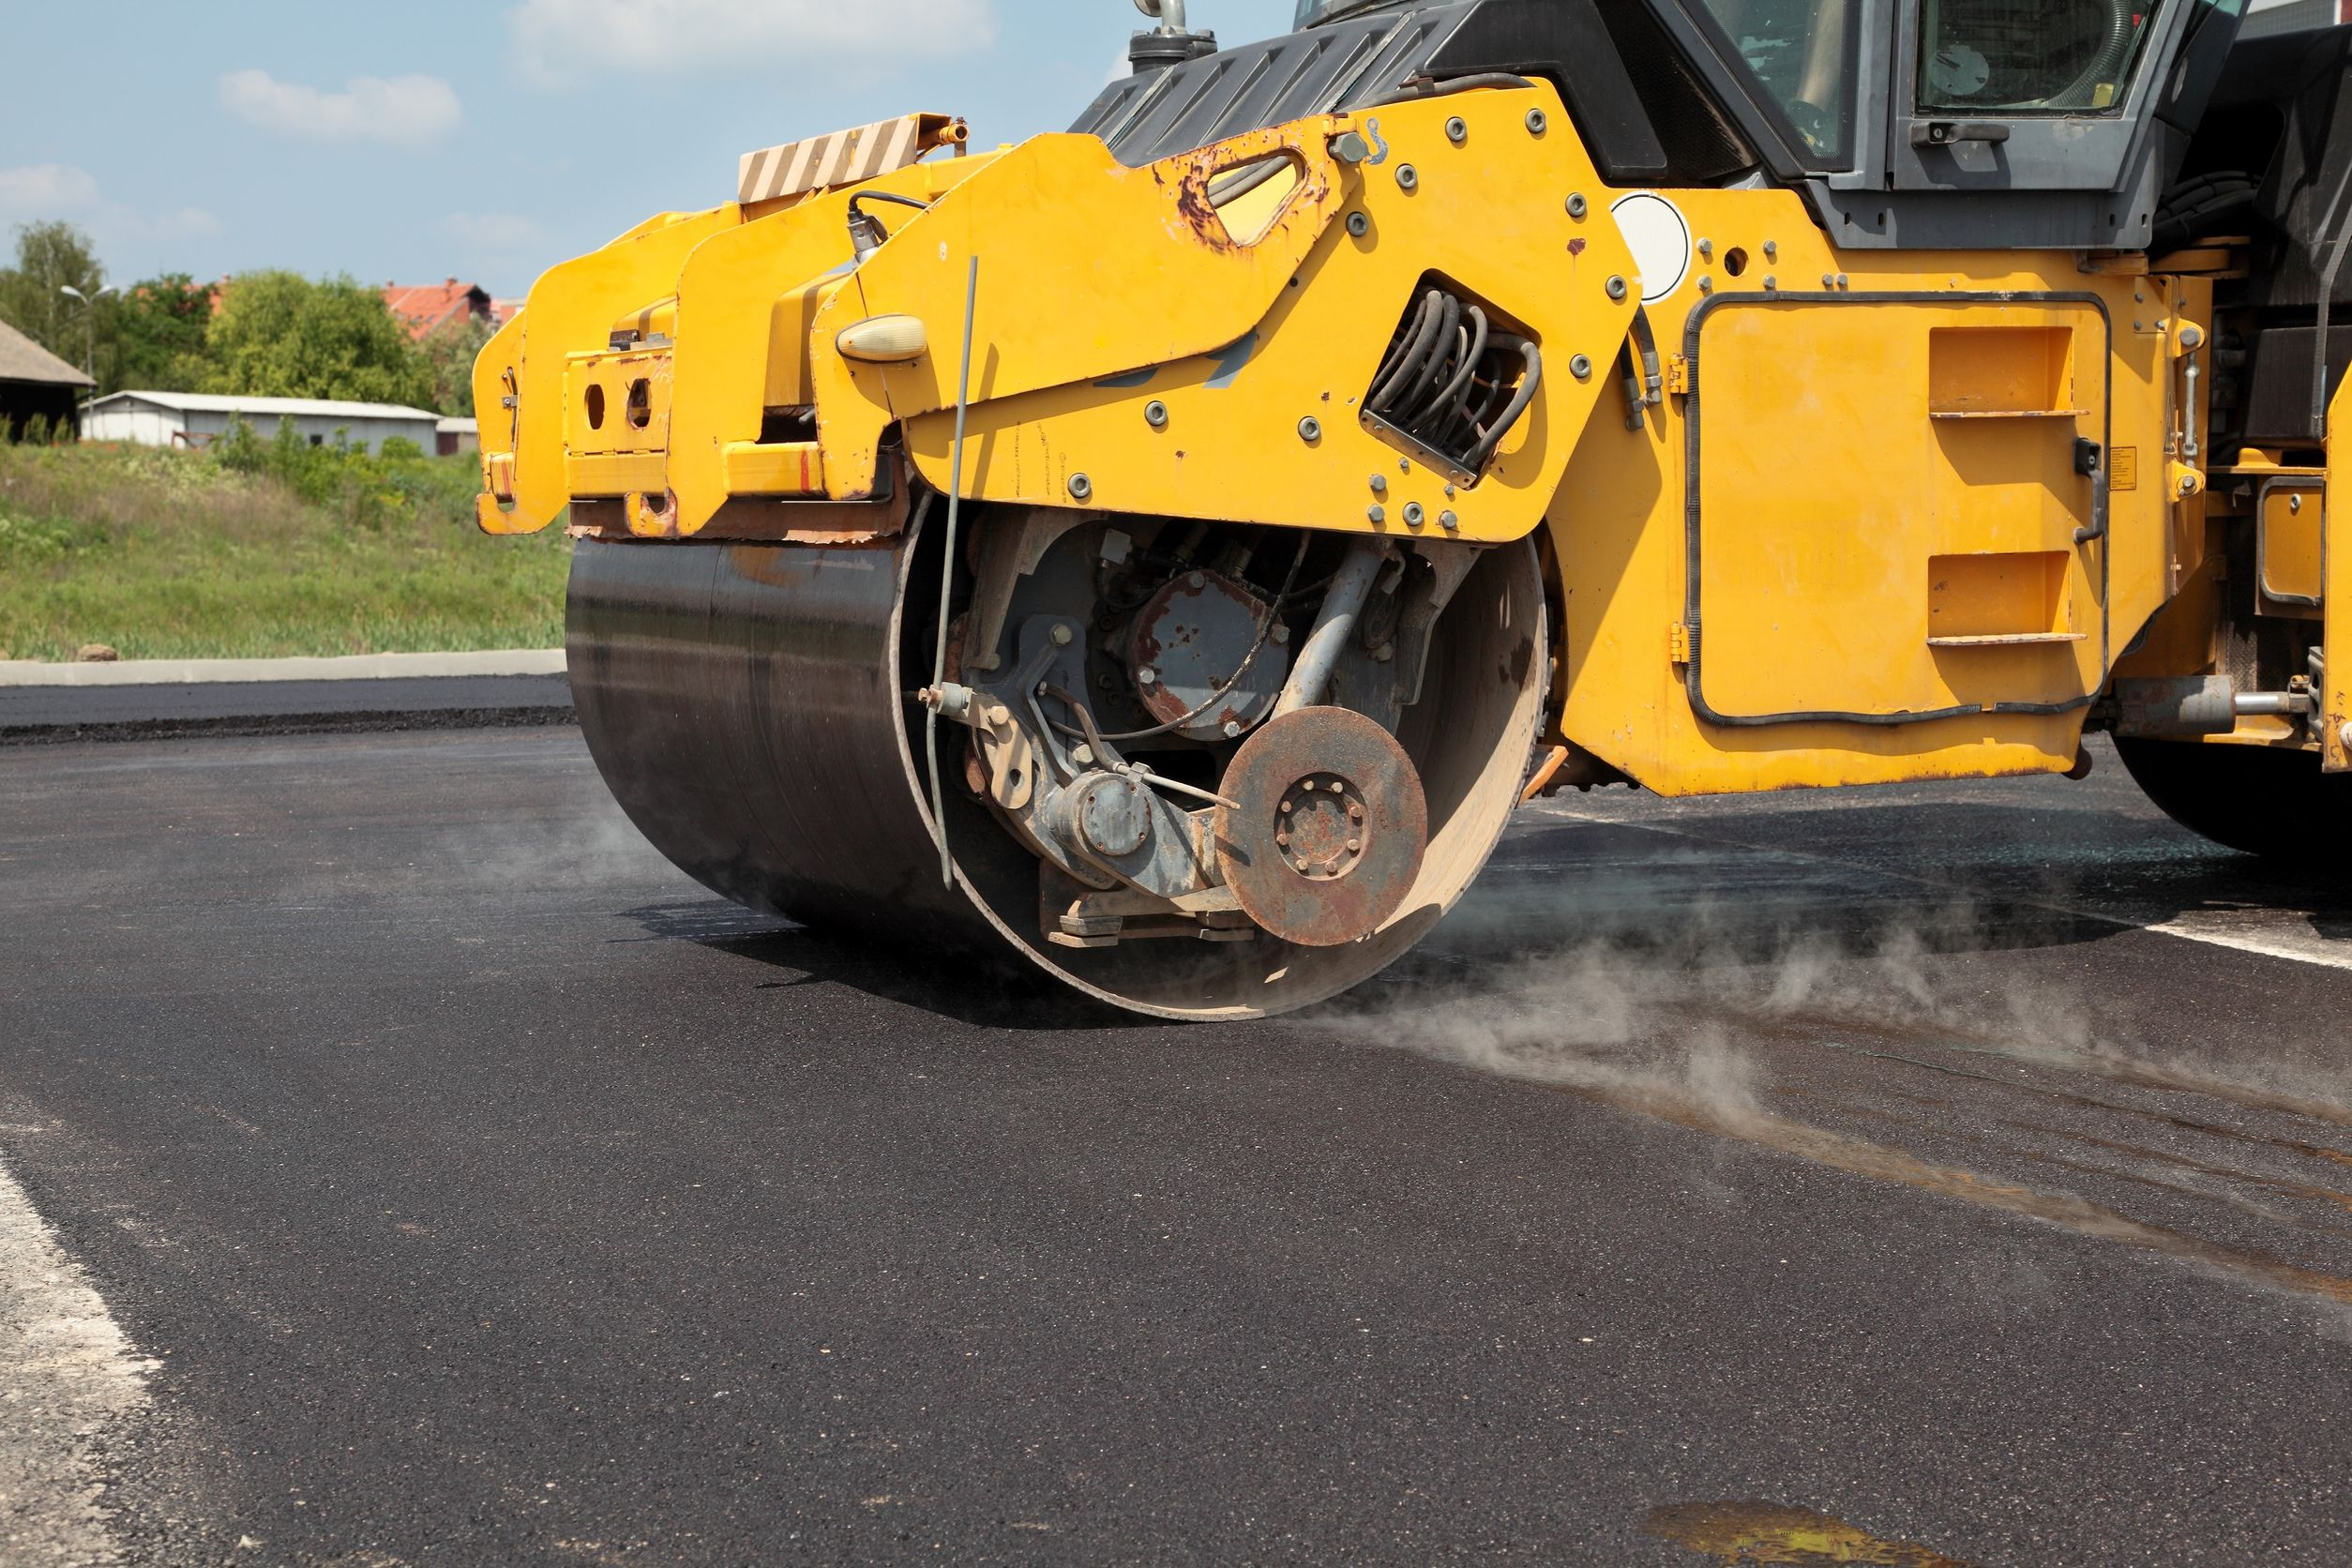 Asphalt Paving Company in Gambrills, Maryland | A&M Asphalt Paving